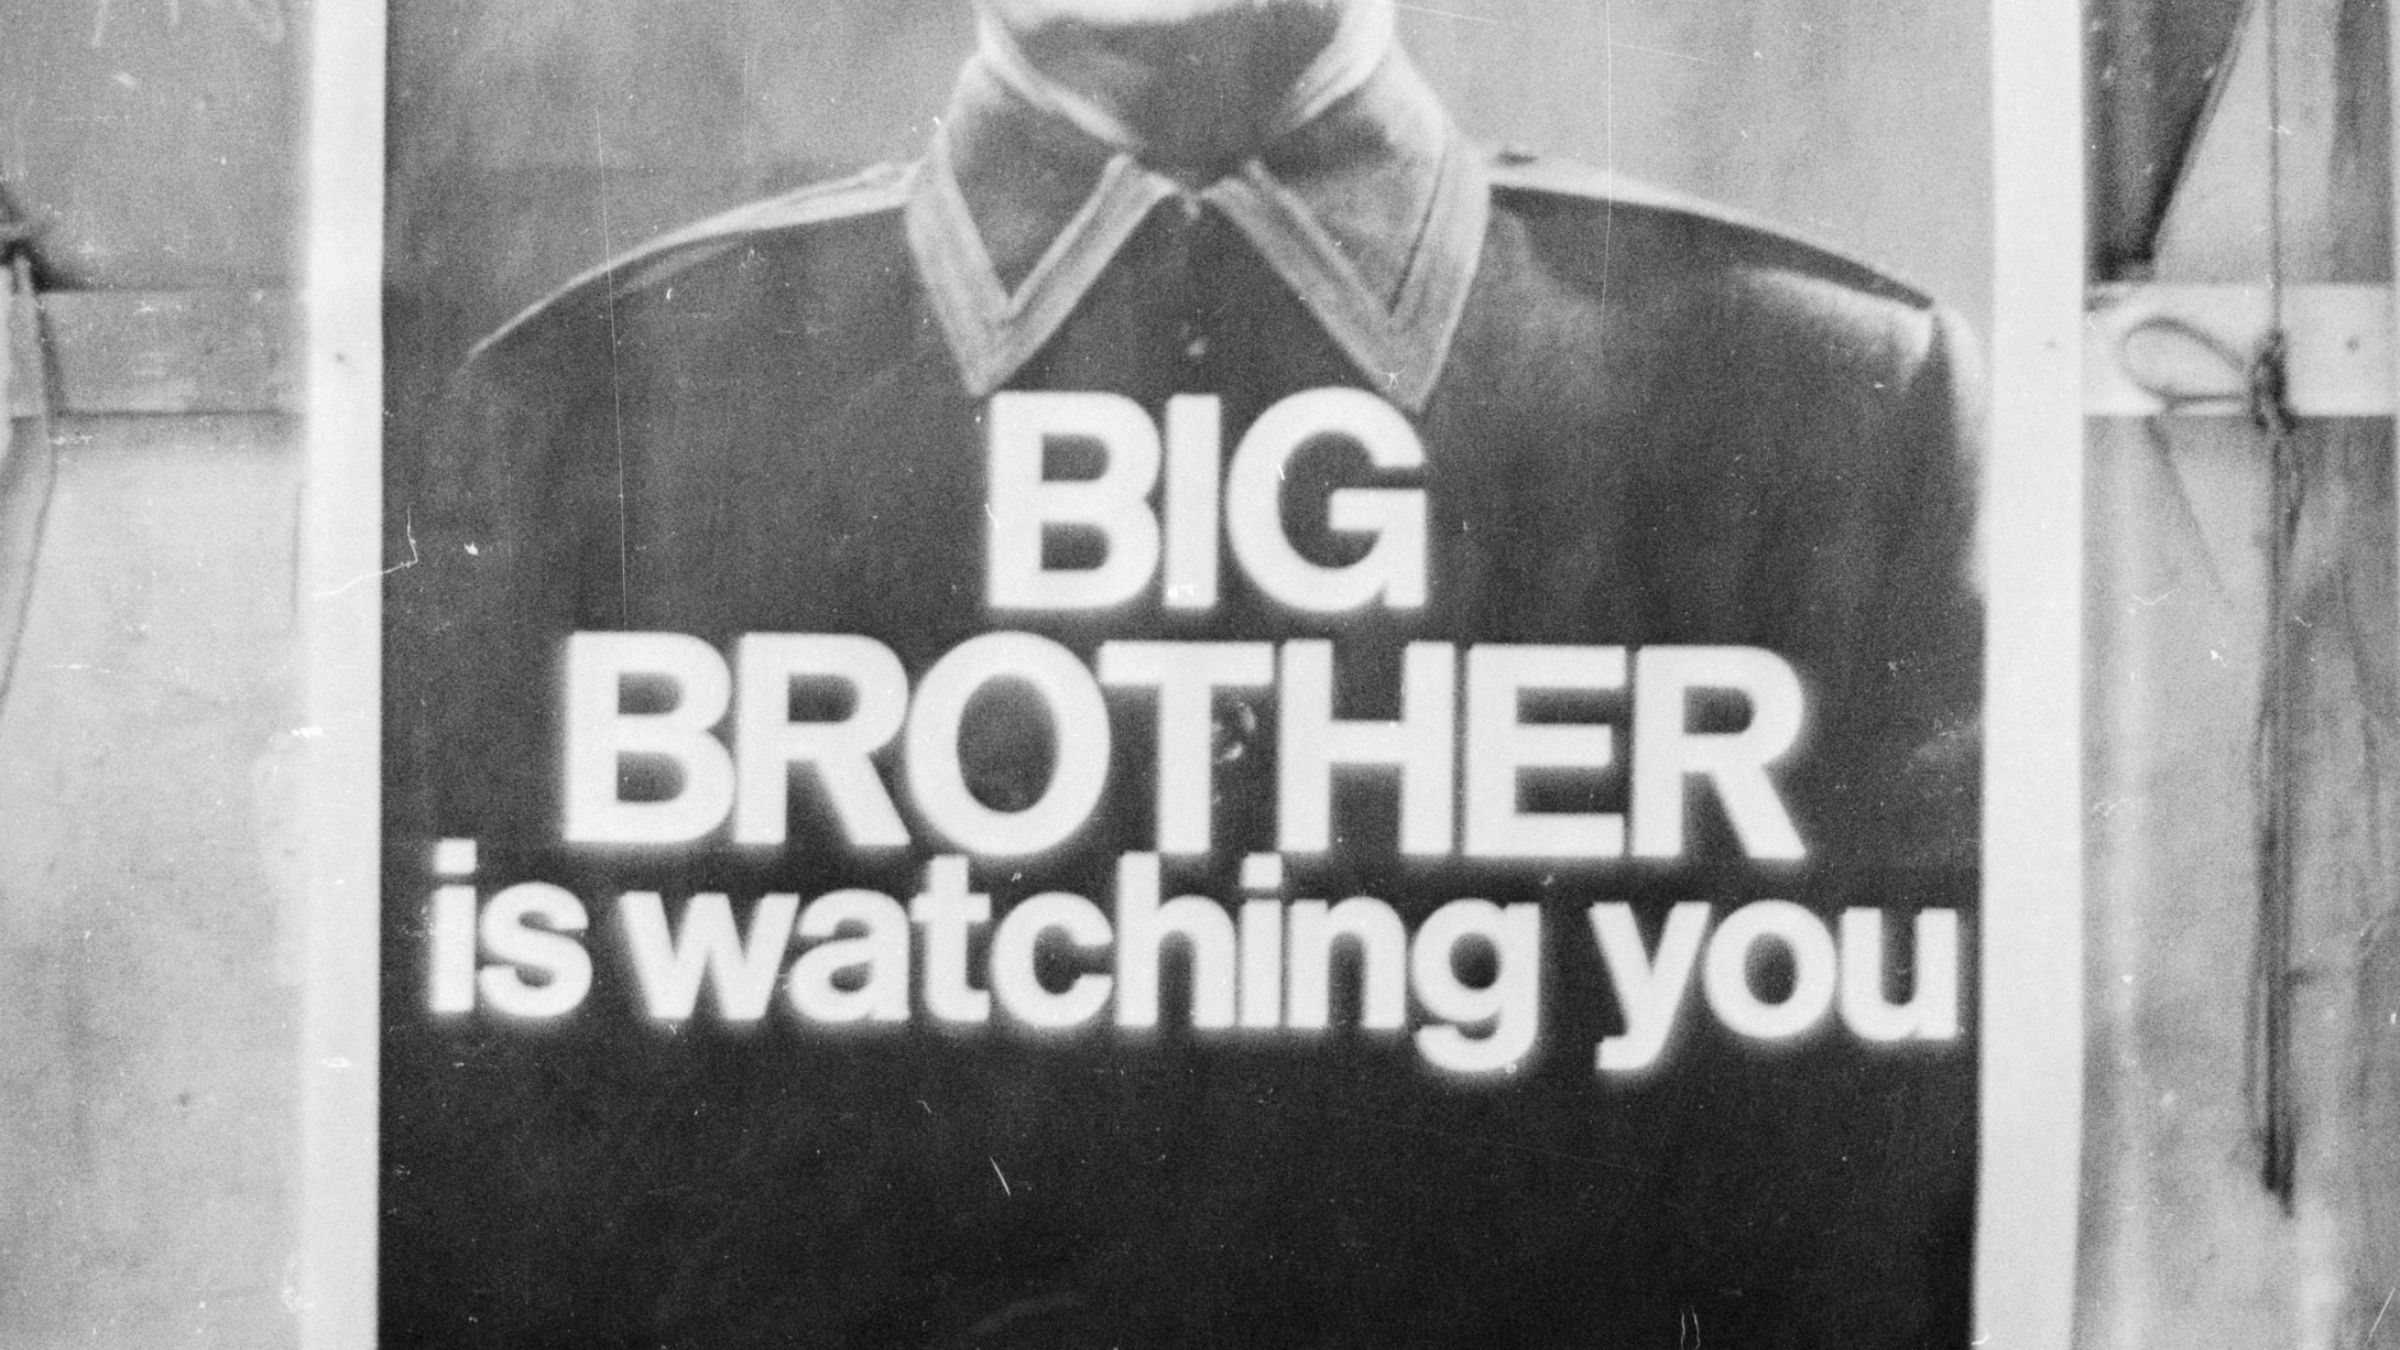 Resultado de imagen para big brother is watching you